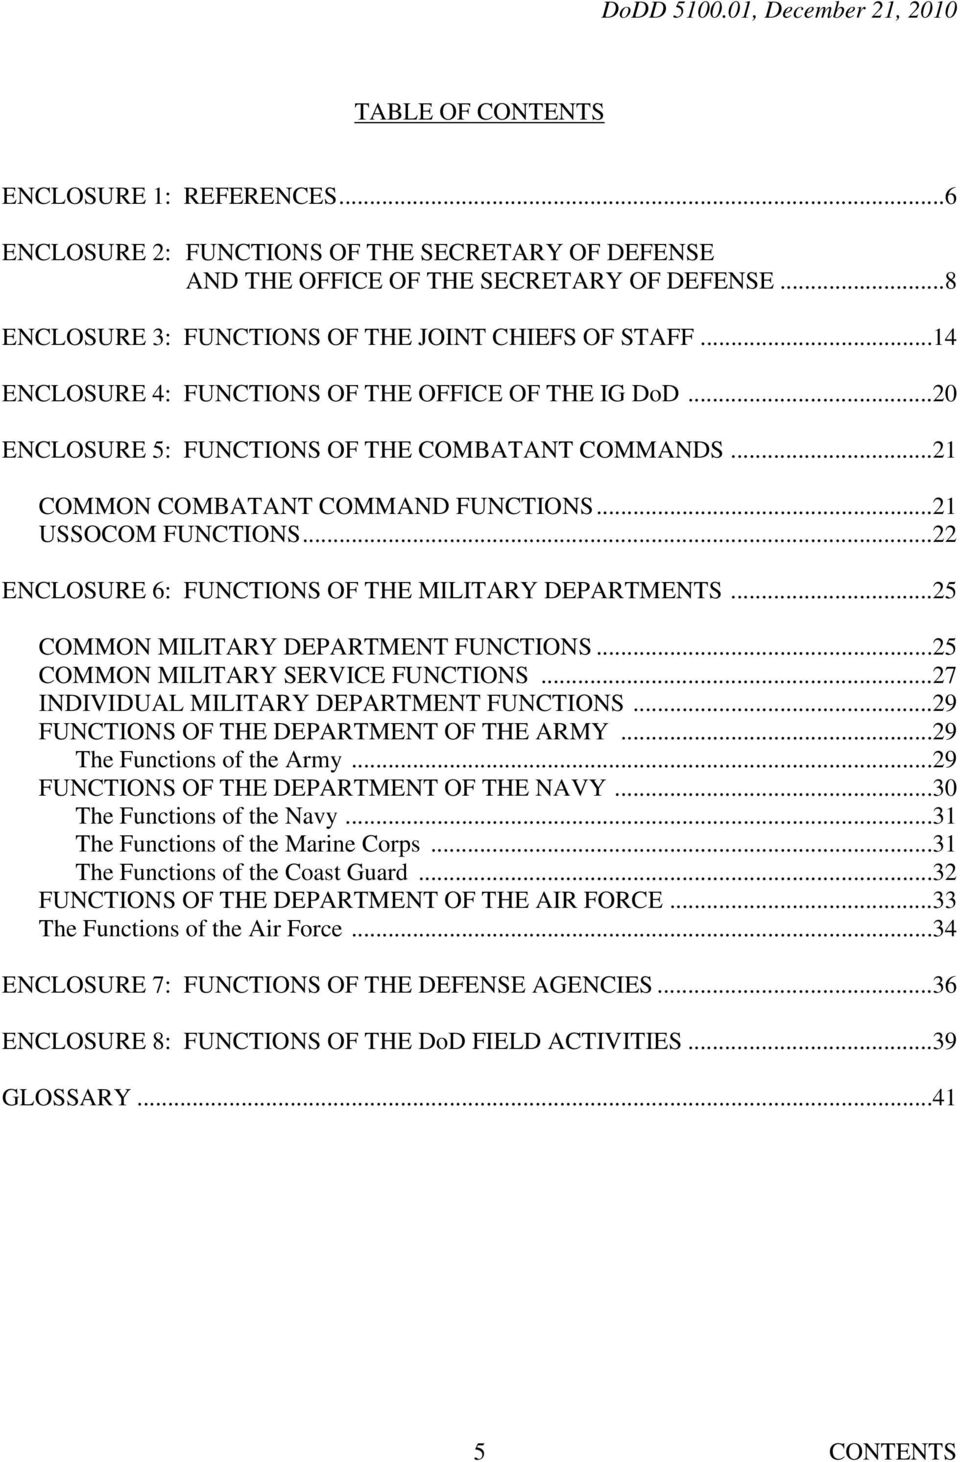 ..22 ENCLOSURE 6: FUNCTIONS OF THE MILITARY DEPARTMENTS...25 COMMON MILITARY DEPARTMENT FUNCTIONS...25 COMMON MILITARY SERVICE FUNCTIONS...27 INDIVIDUAL MILITARY DEPARTMENT FUNCTIONS.